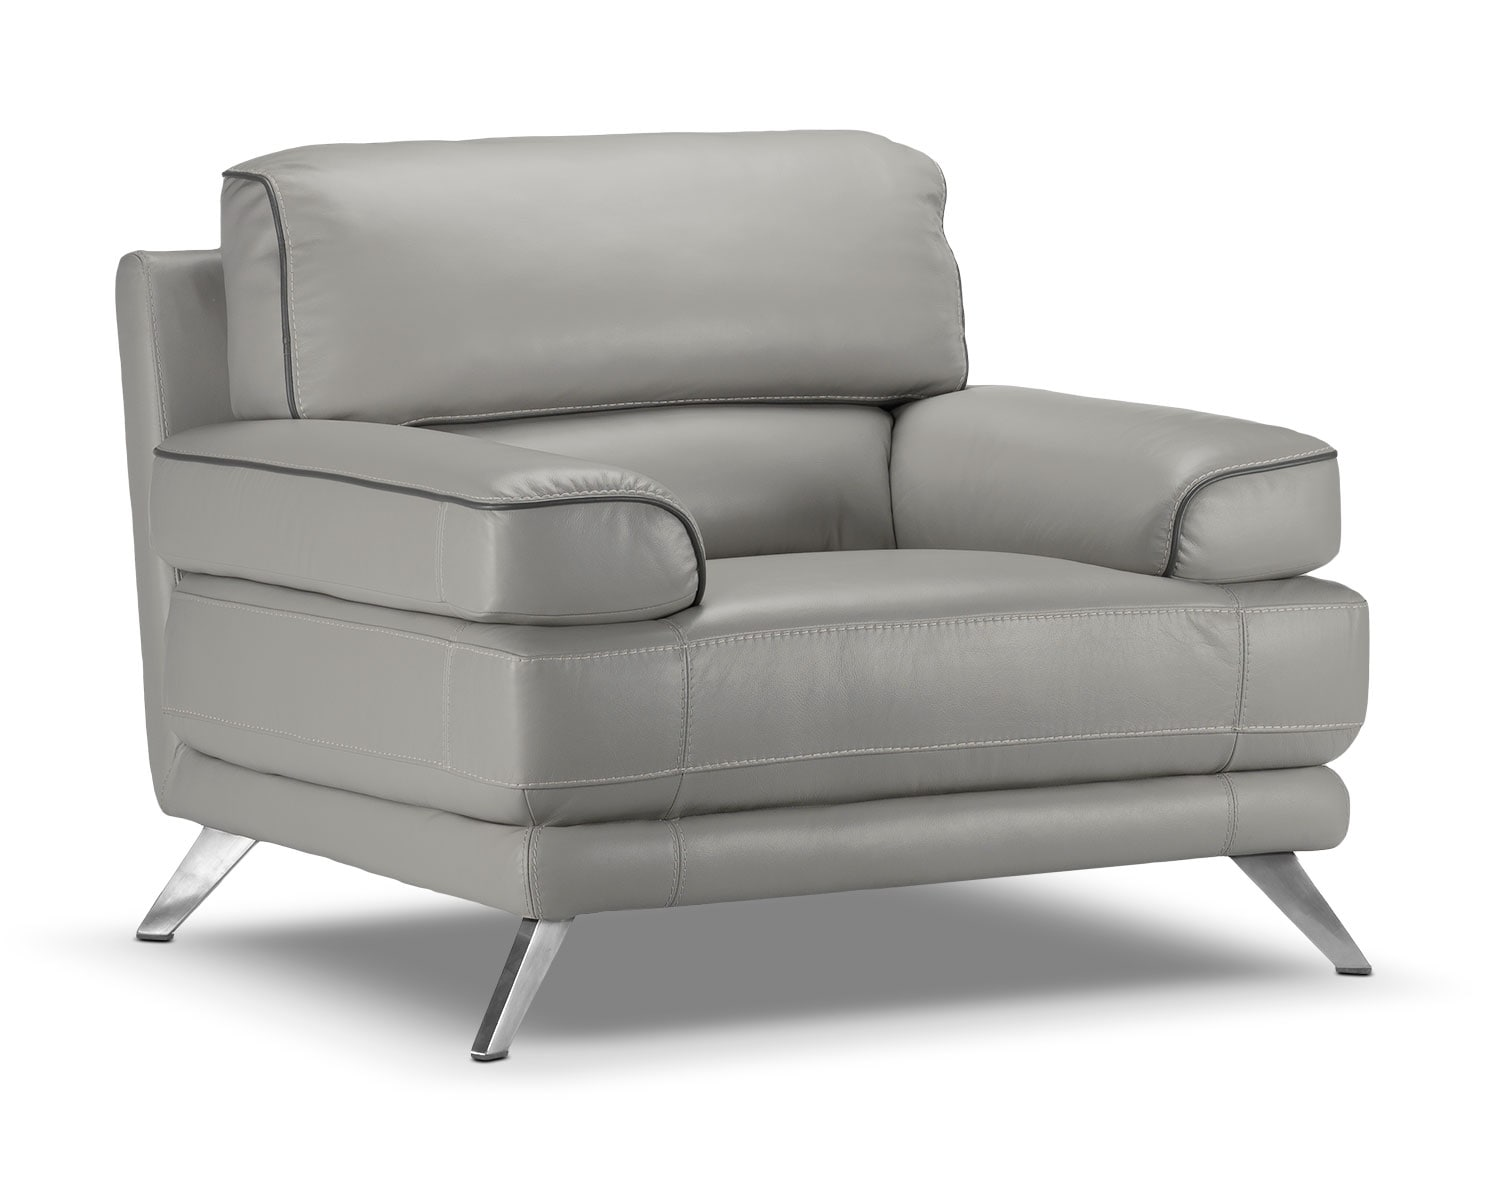 Living Room Furniture - Sutton Chair - Grey